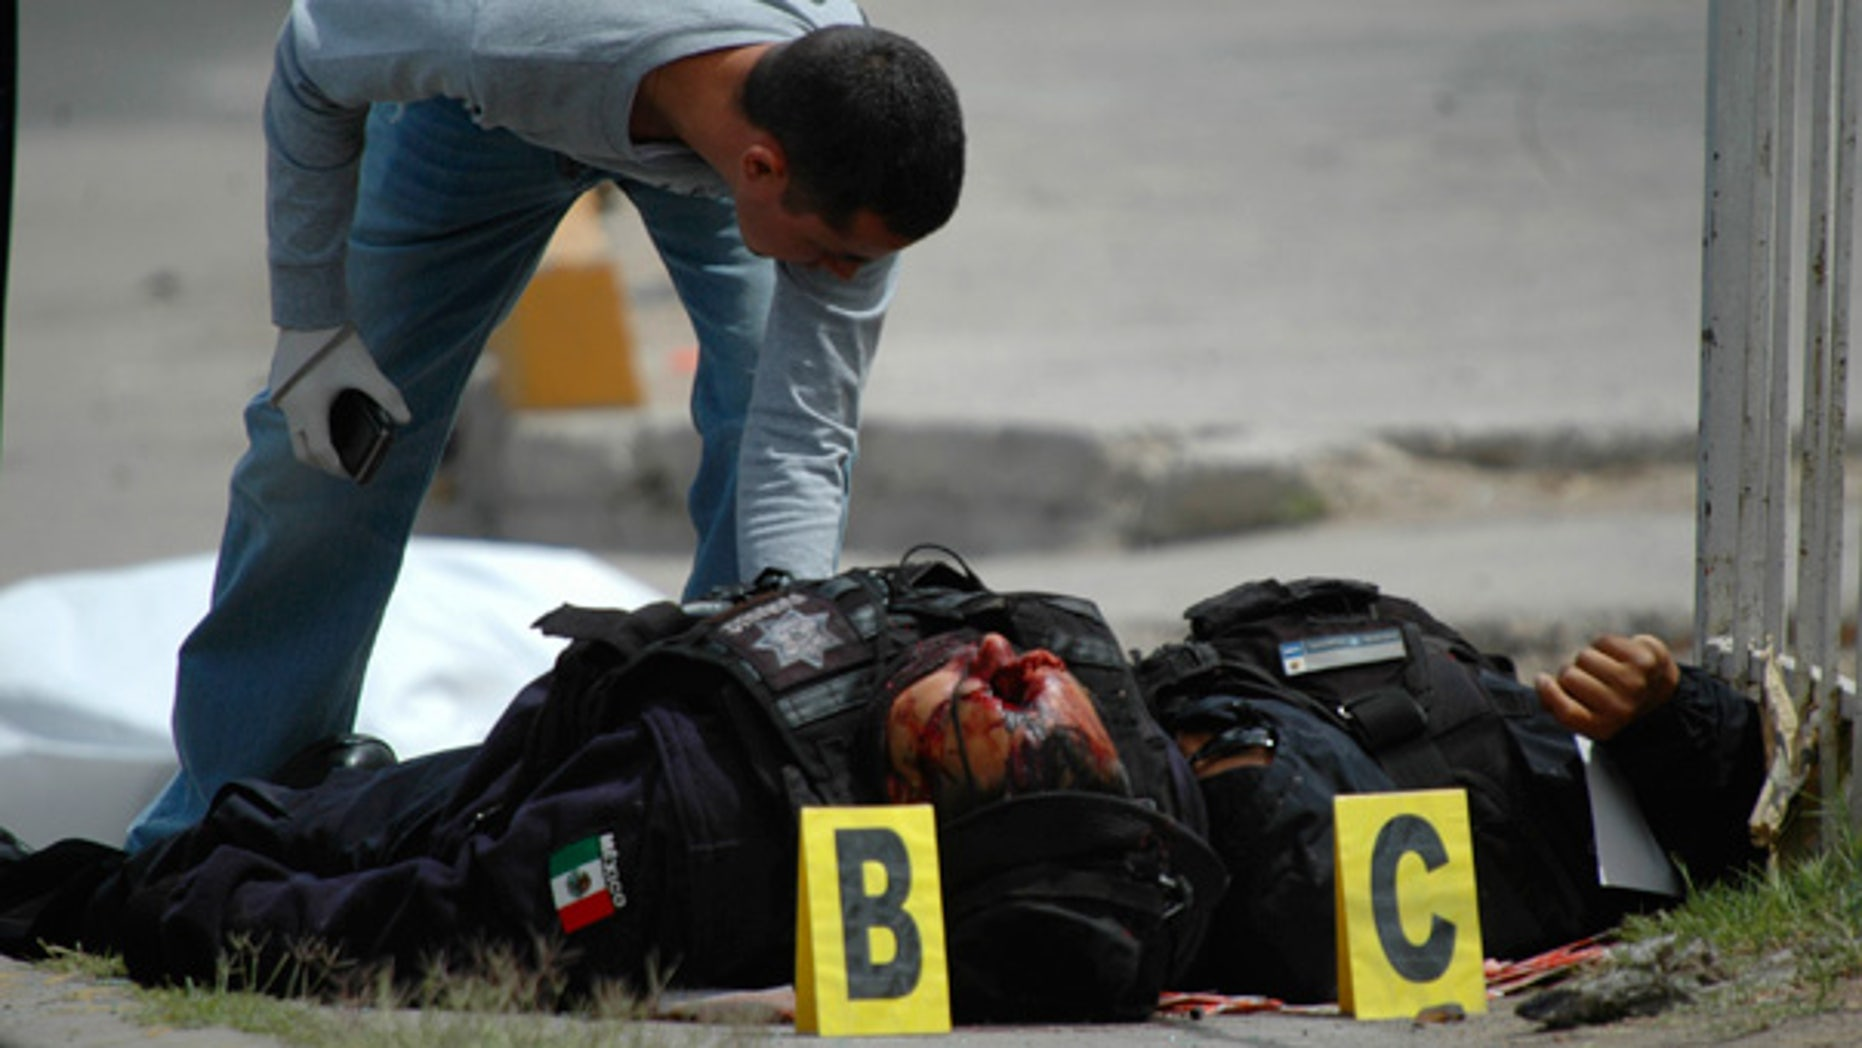 April 23: Police forensics expert examines the bodies of federal policemen that were killed after being ambushed in Ciudad Juarez.